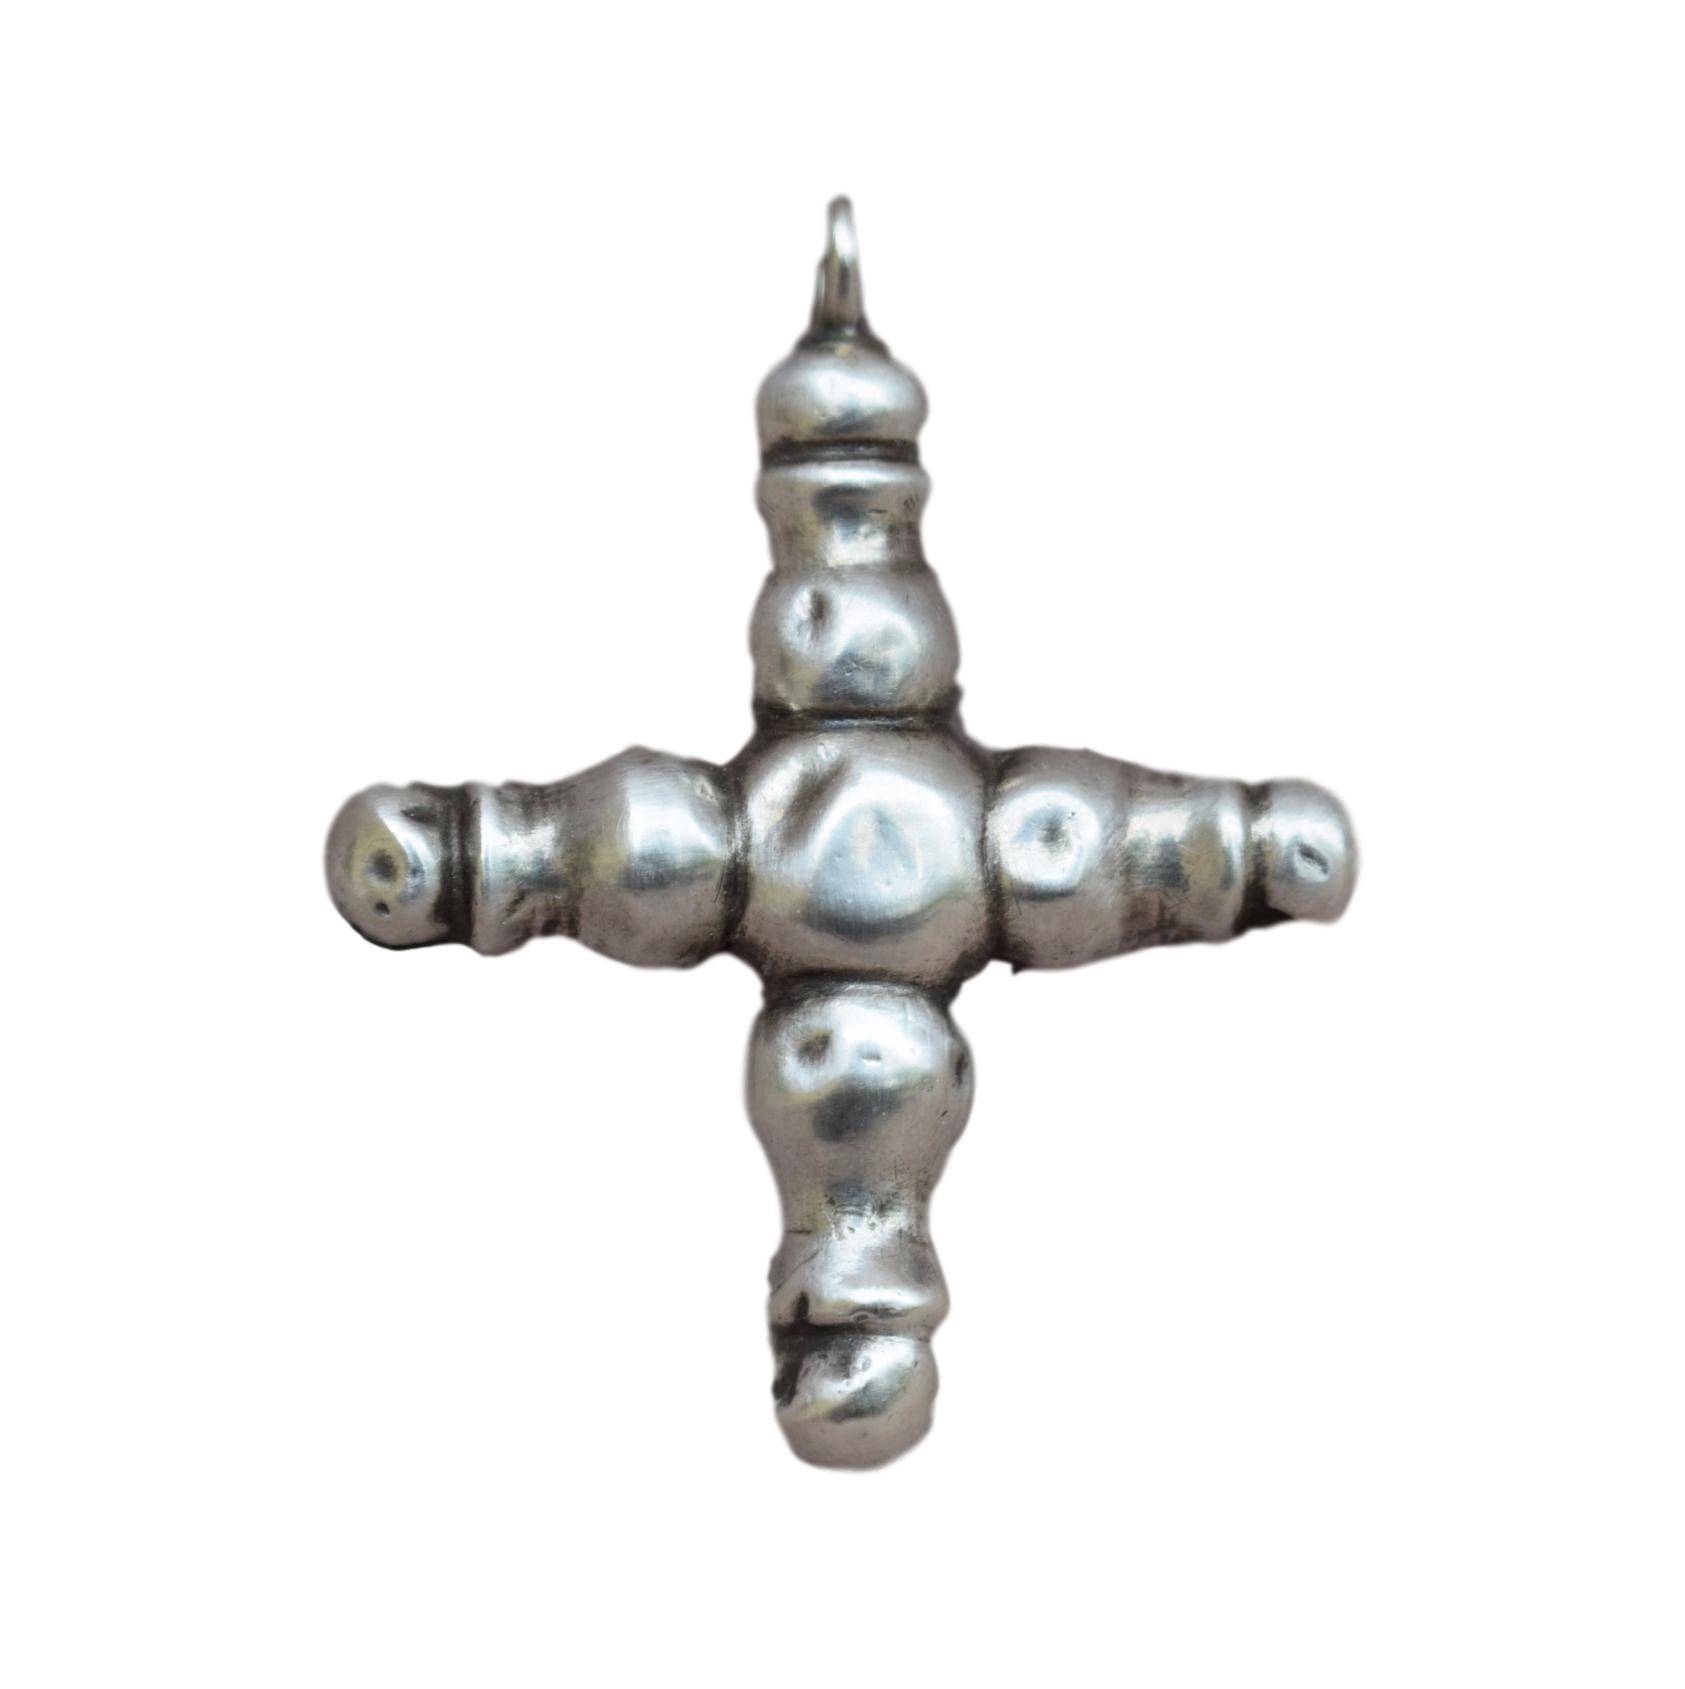 Antique Cross Pendant - Charmantiques